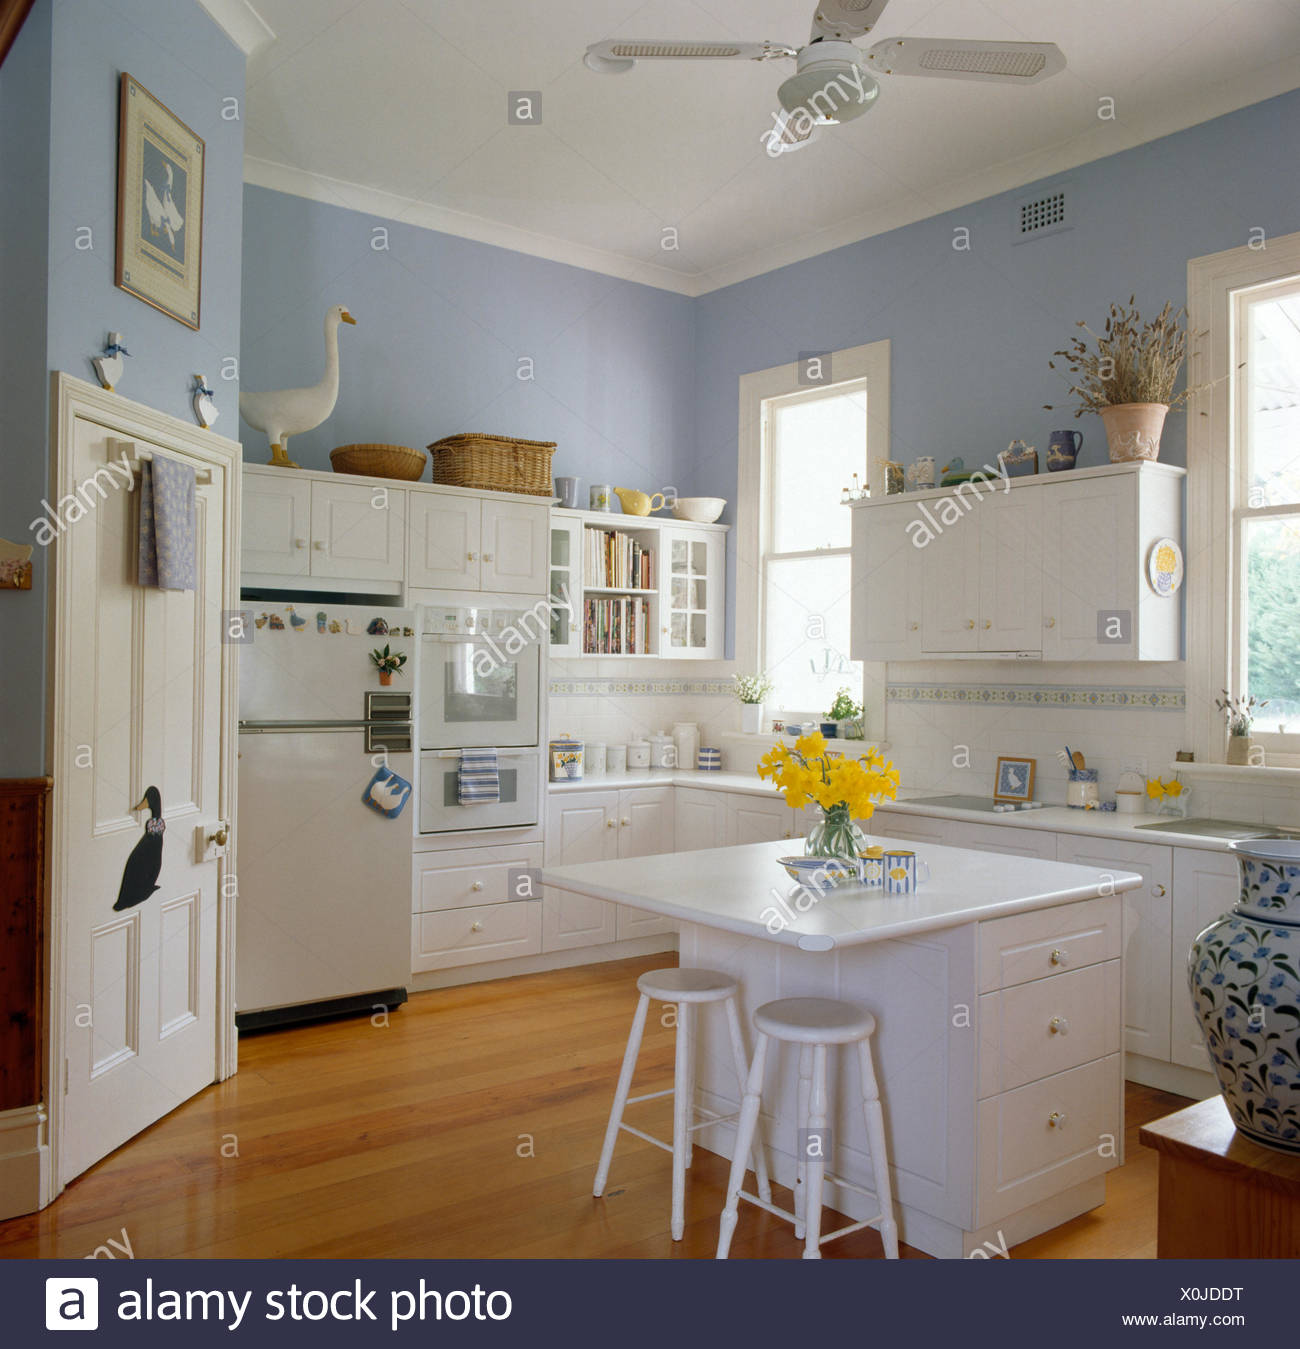 Pale Blue Kitchen White Stools At Island Unit In A Pale Blue Kitchen With Wooden